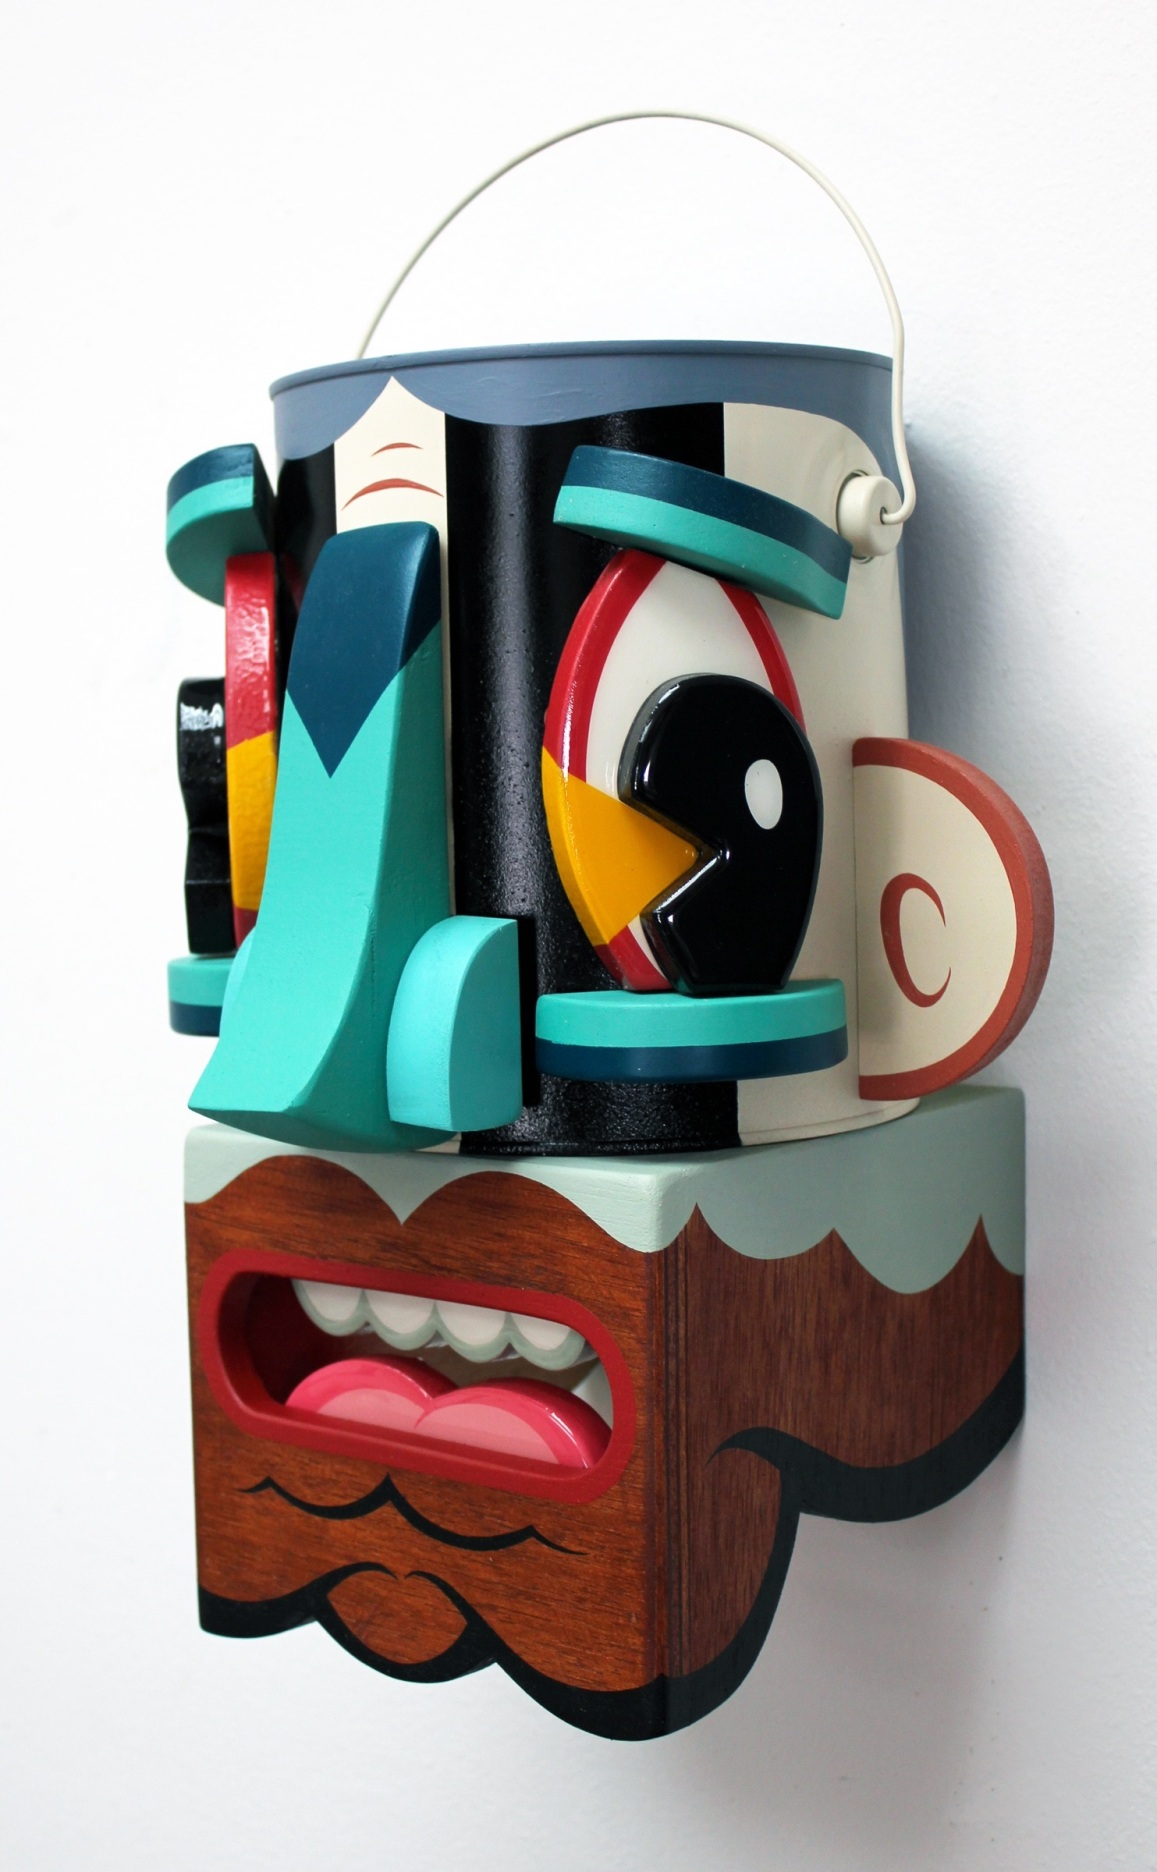 13 Alex Yanes popart tridimensional objects sculptures american art design sztuka amerykanska